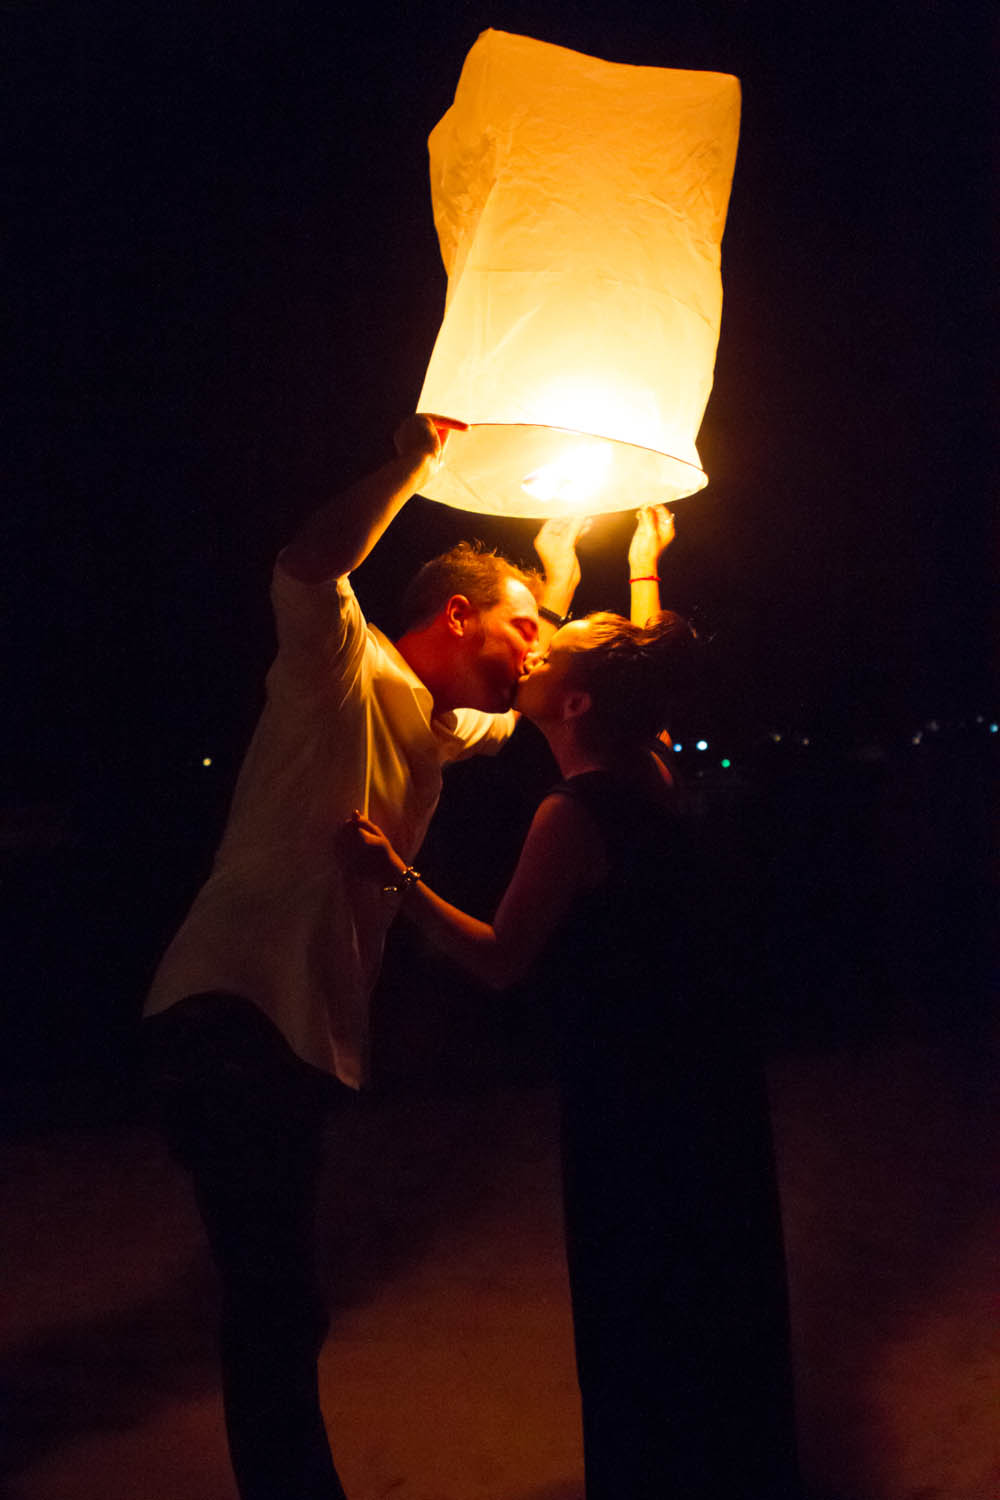 Image 14 of Brina and Rafael | Engaged in Thailand